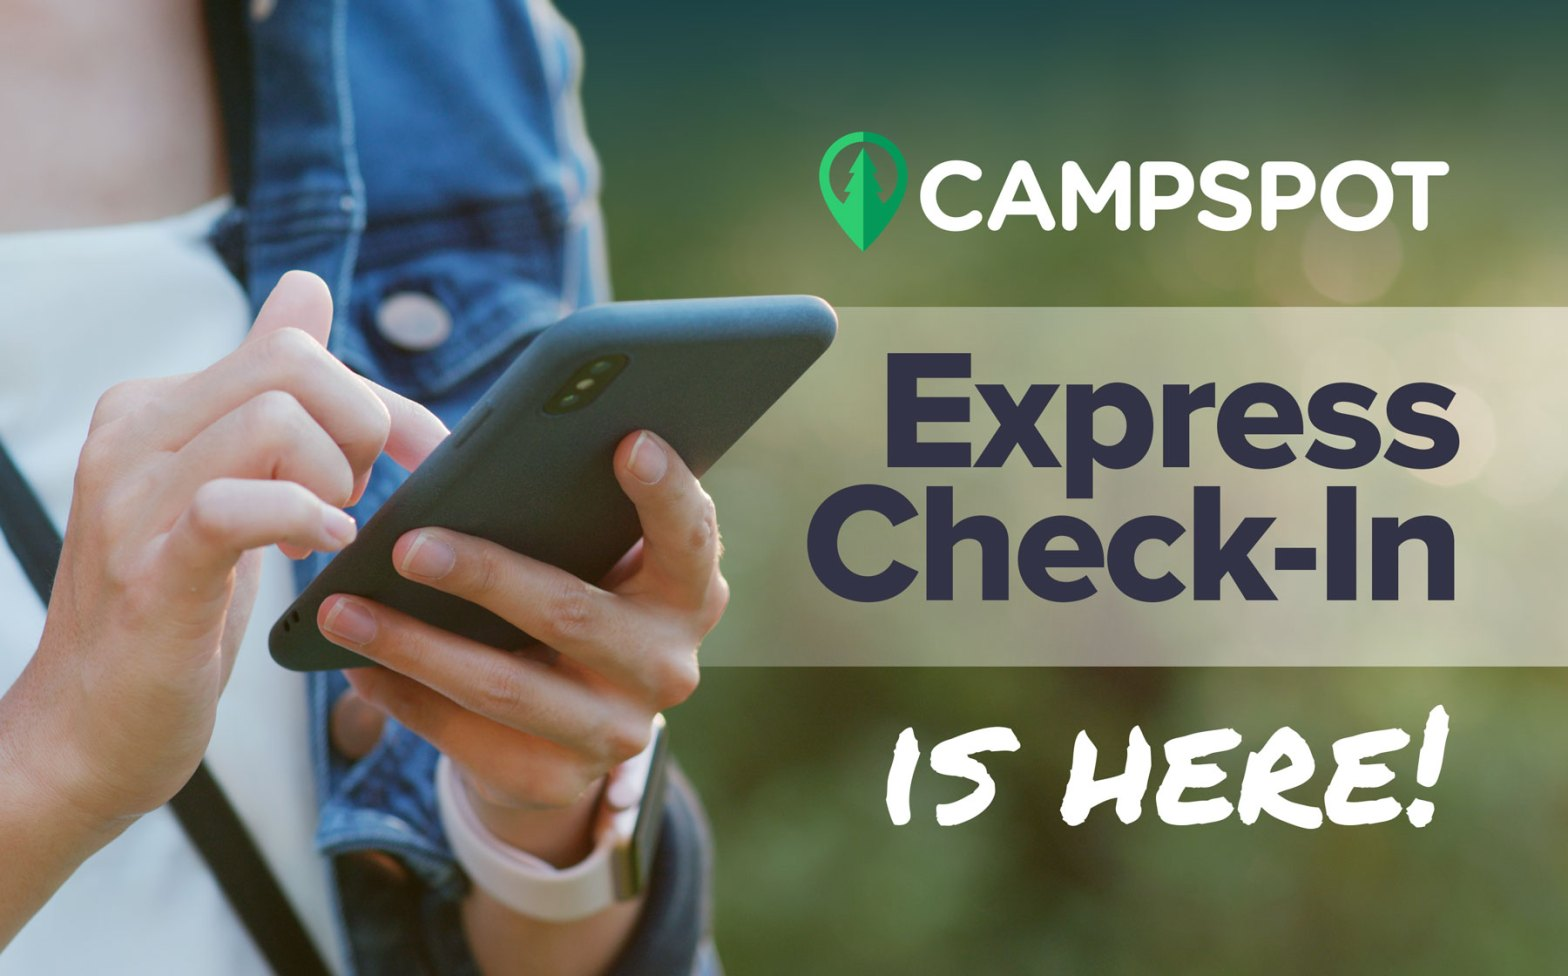 Holding a phone express check in